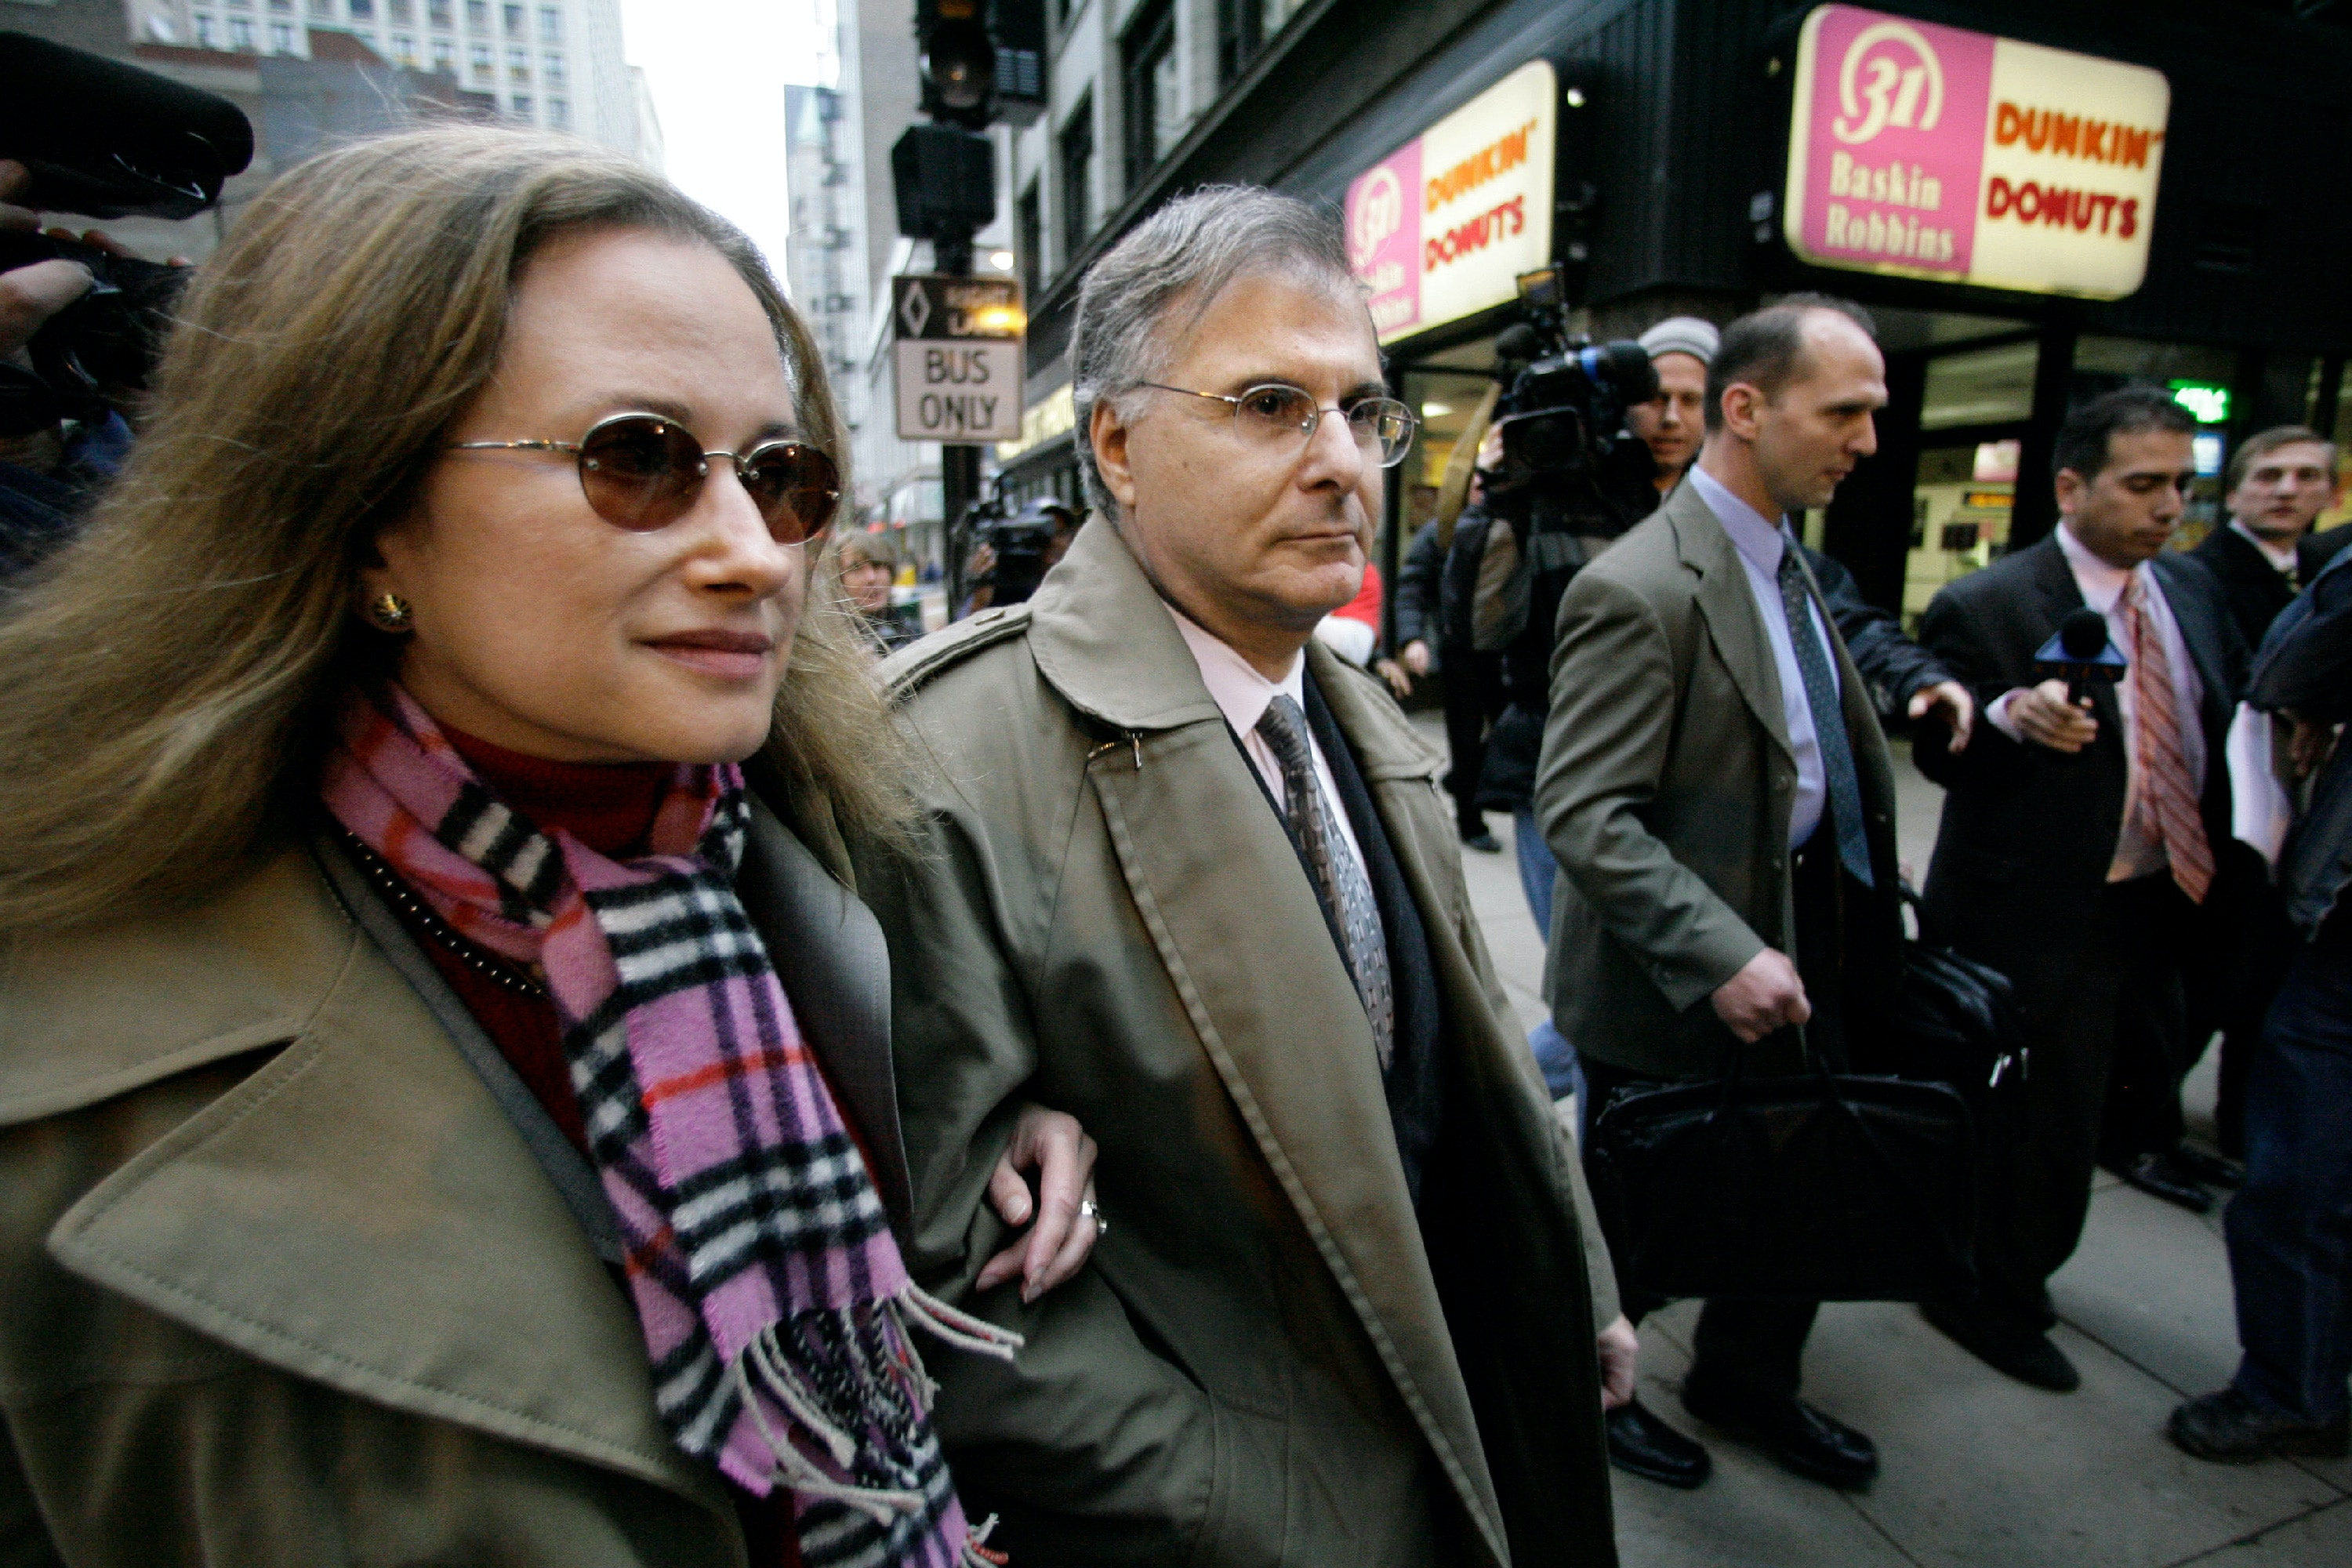 Millionaire campaign contributor Stuart Levine, center, who has become an issue in the Illinois governor's race, leaves federal court Friday, Oct. 27, 2006, in Chicago. The businessman who funneled thousands of dollars into Gov. Rod Blagojevich's campaign pleaded guilty Friday to using his seats on two state boards in a bid to collect millions of dollars in kickbacks. (AP Photo/M. Spencer Green)